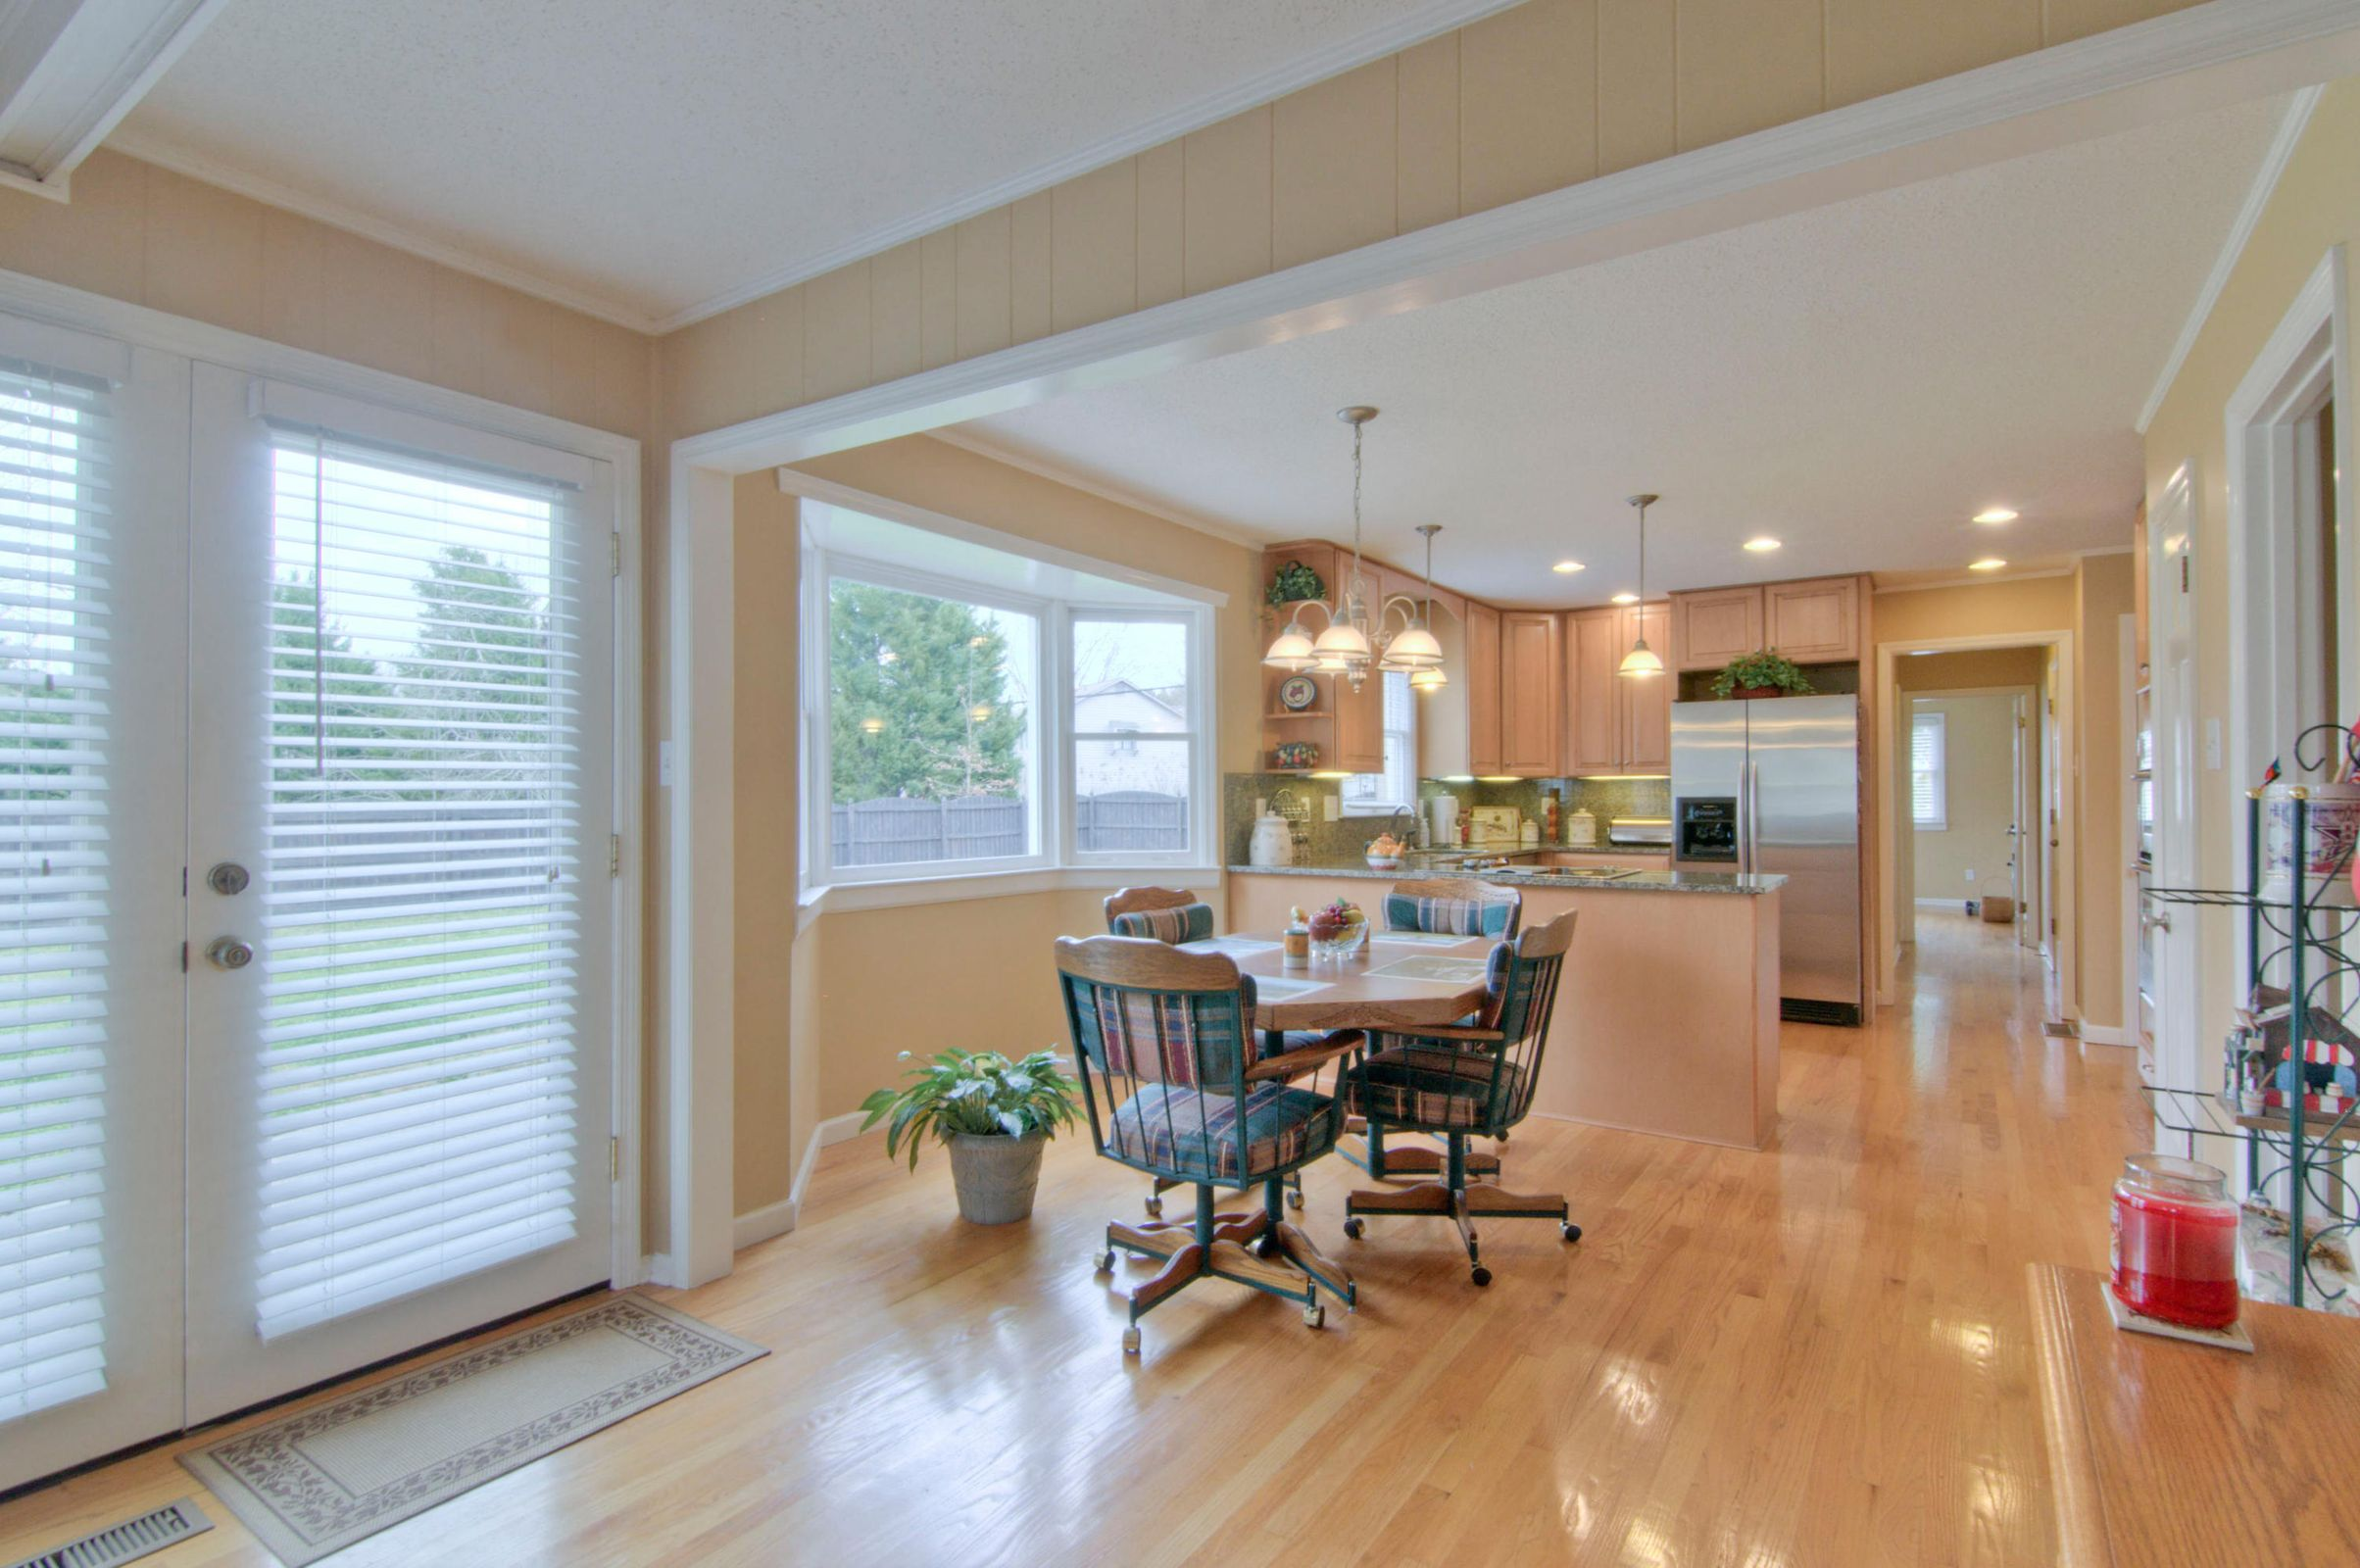 EATING AREA EXTENDS TO KITCHEN